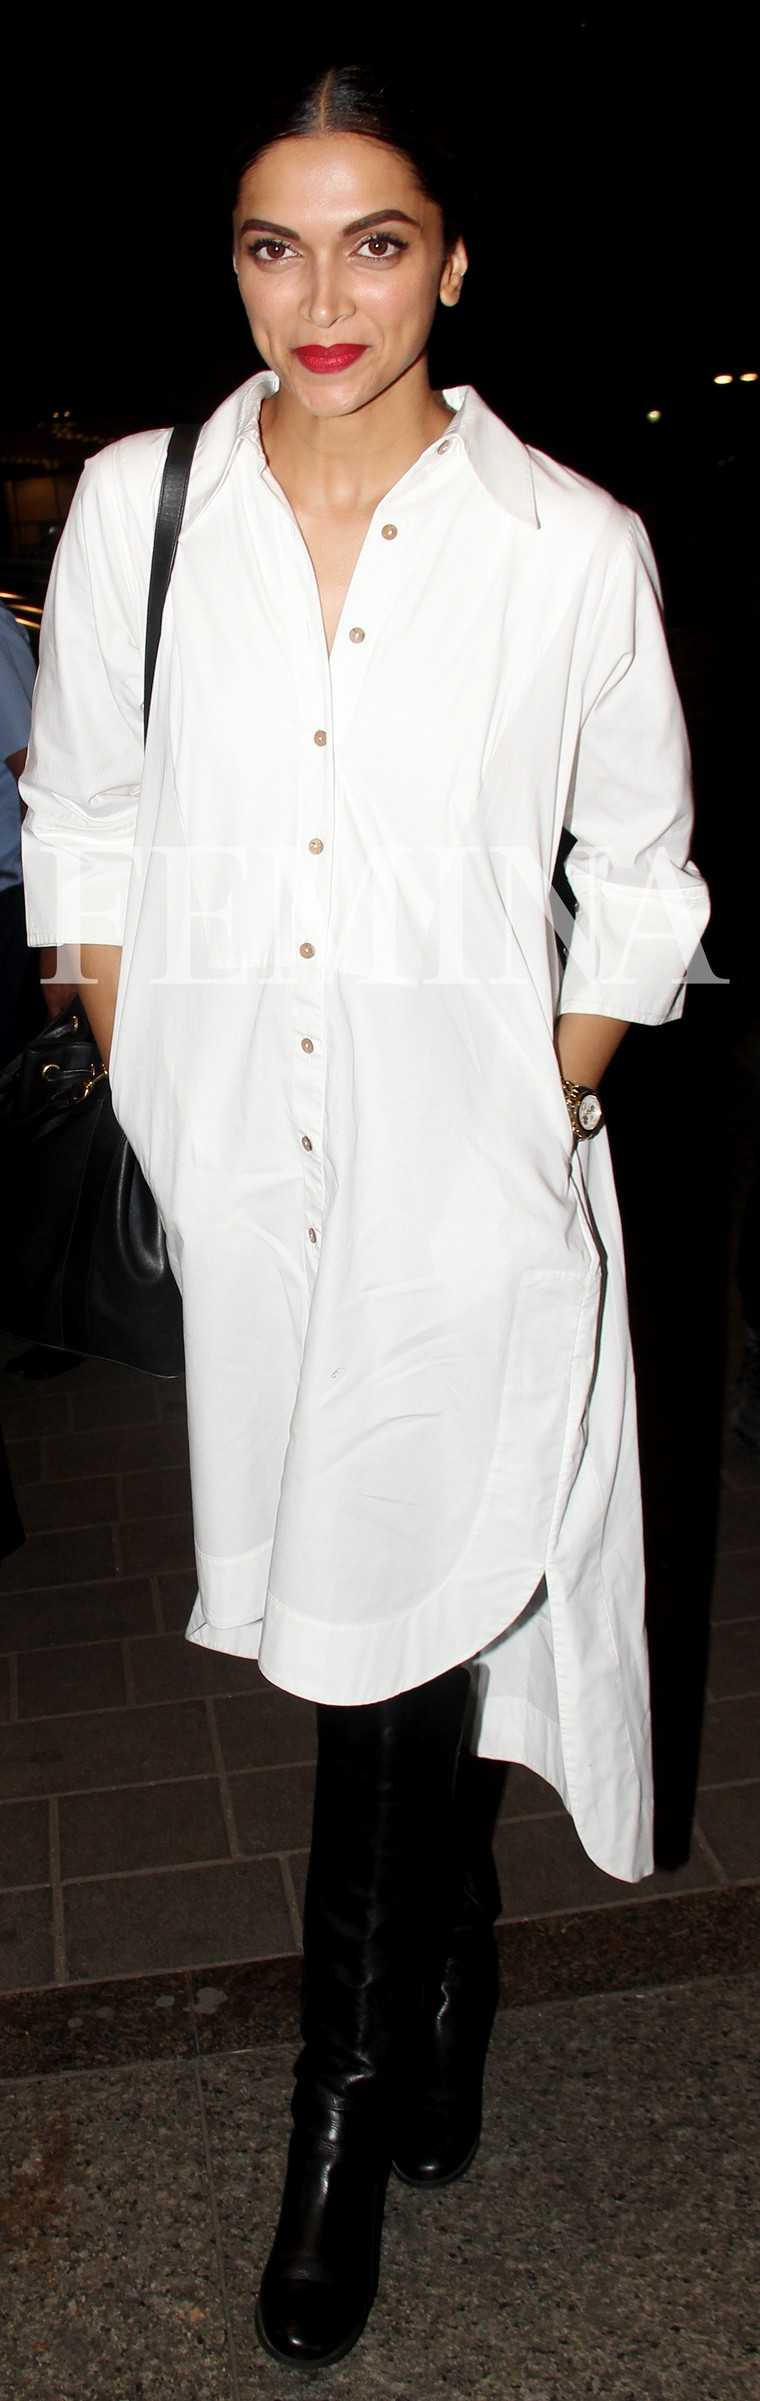 DEEPIKA PADUKONE In case you don't have one already, your next big purchase should definitely be a crisp white shirt dress like Deepika's from the Chola by Sohaya. It's the perfect canvas to channel any mood—wear it over your jeans if you're tra